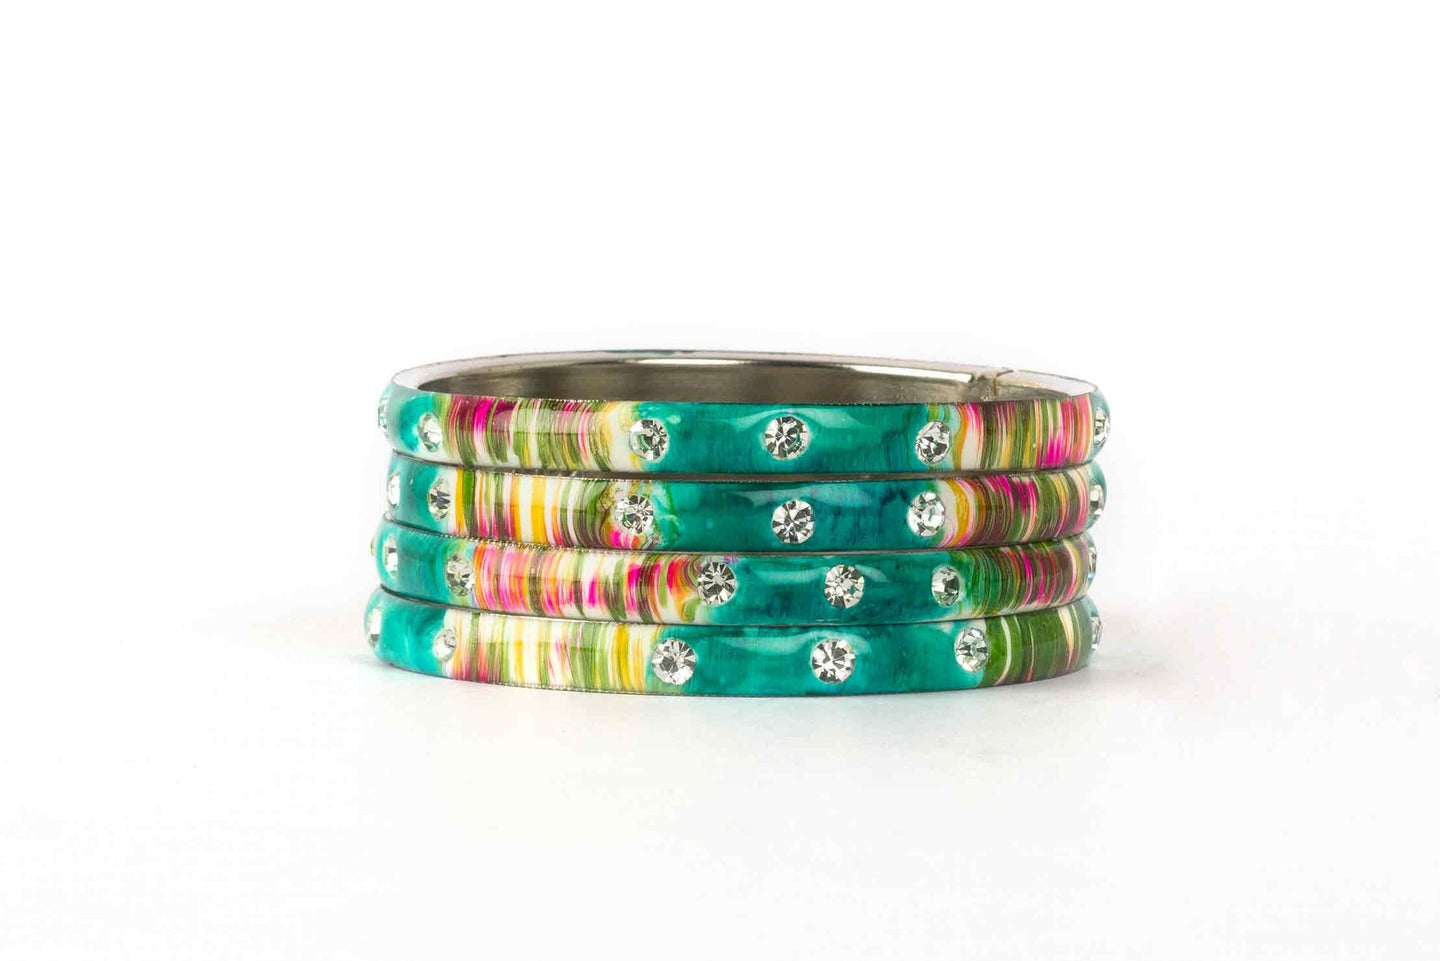 TURQUOISE MEENAKARI BRACELETS WITH HAND PAINTED PRINT DESIGN AND RUNNING STONES